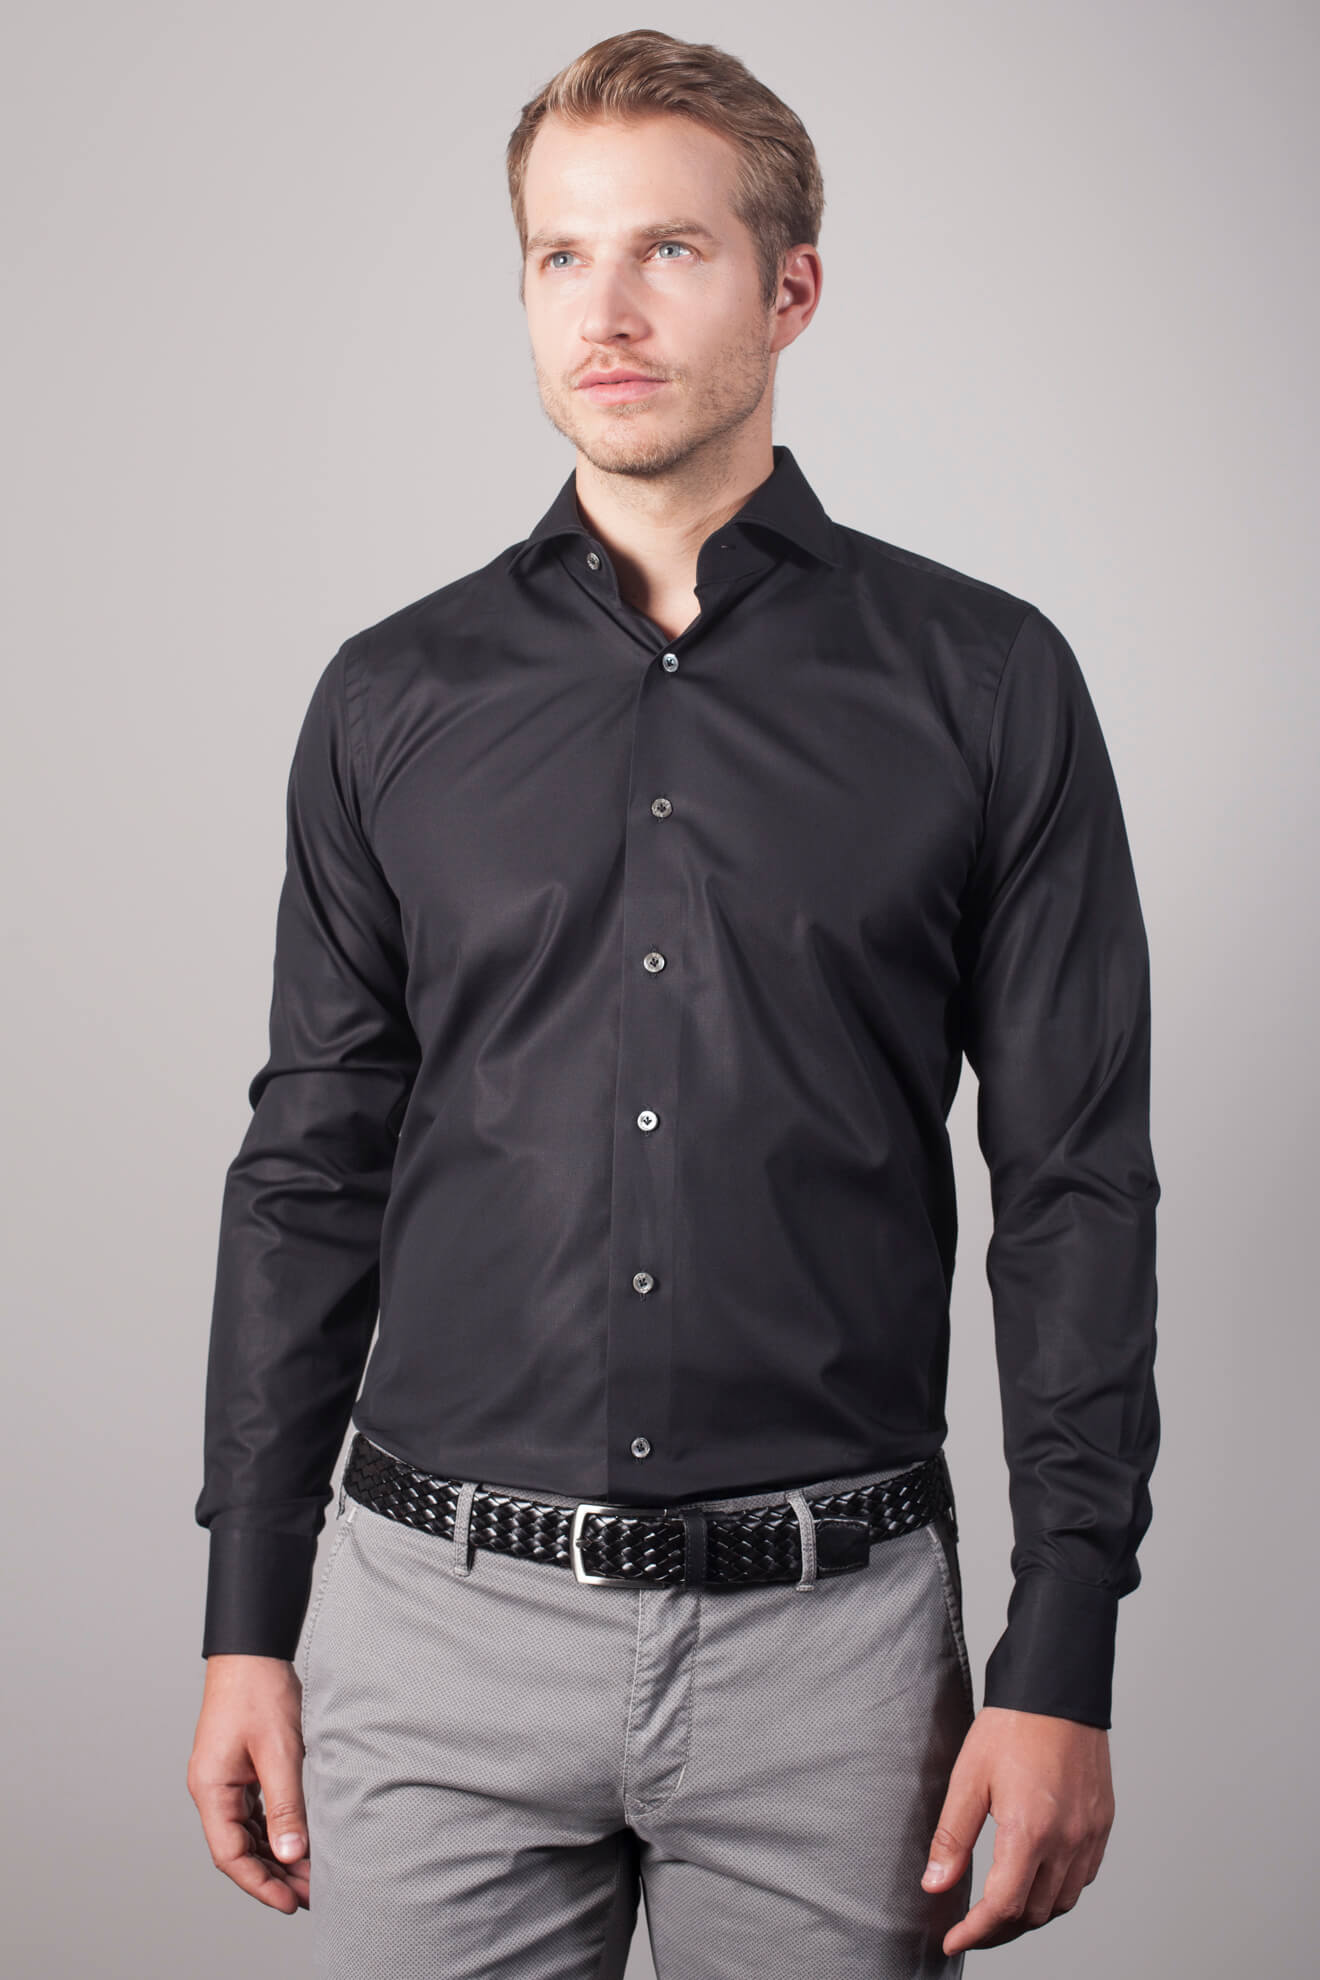 DU4-Shirts-True-Black-Slimfit-Hemd-1